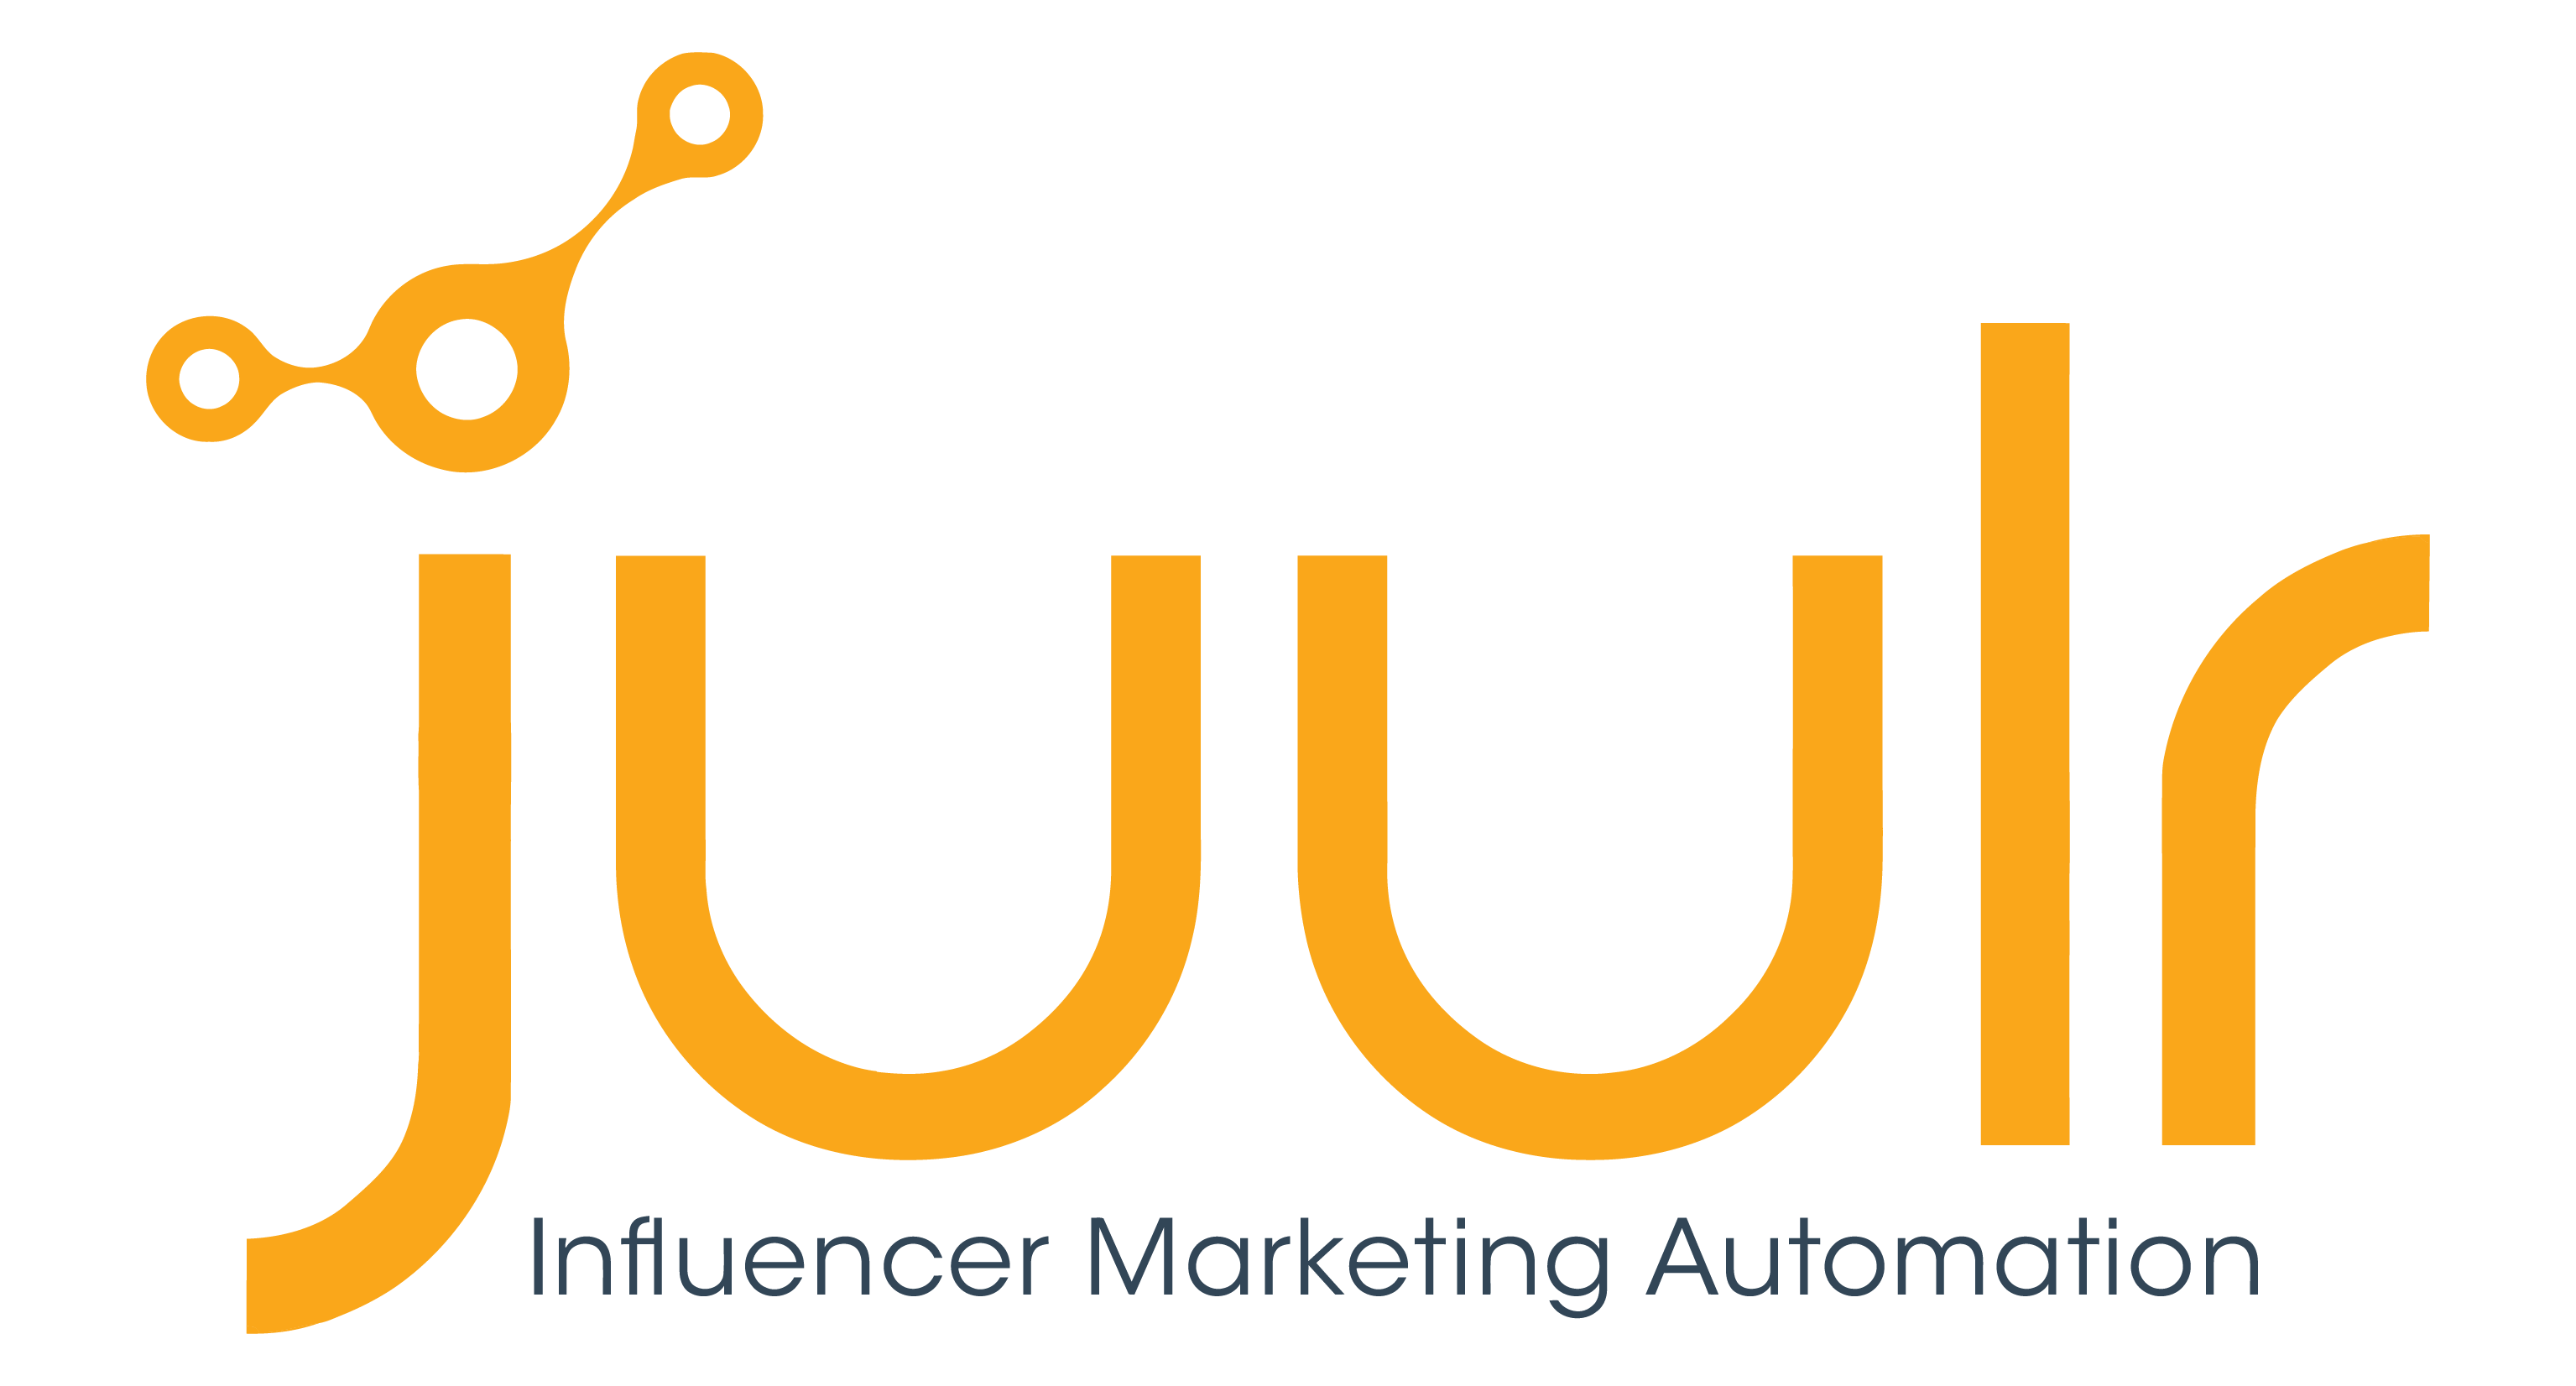 Juulr Logo | Influencer Marketing